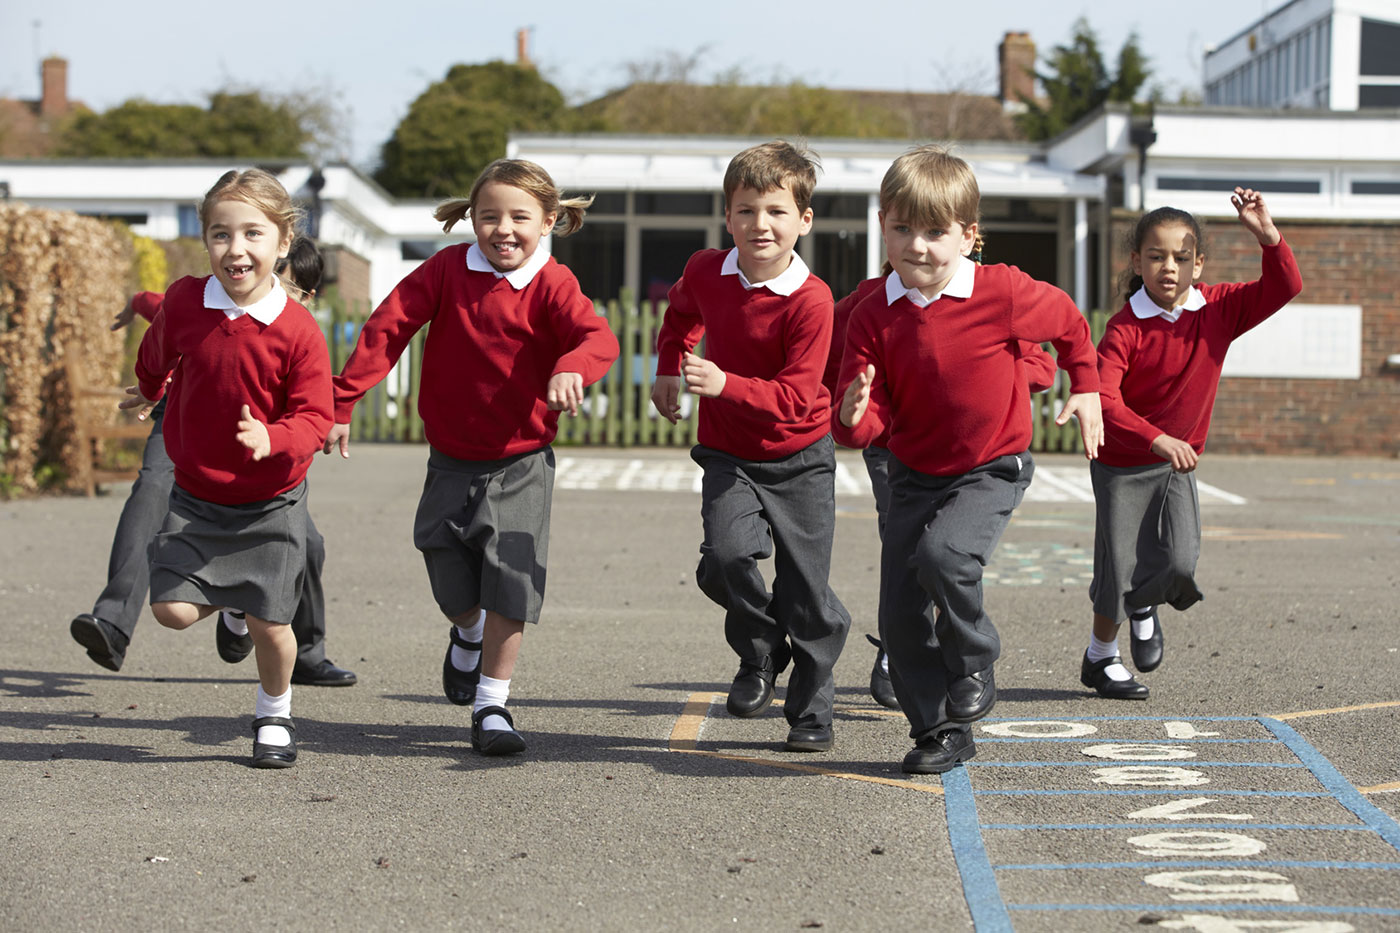 children running in the school playground